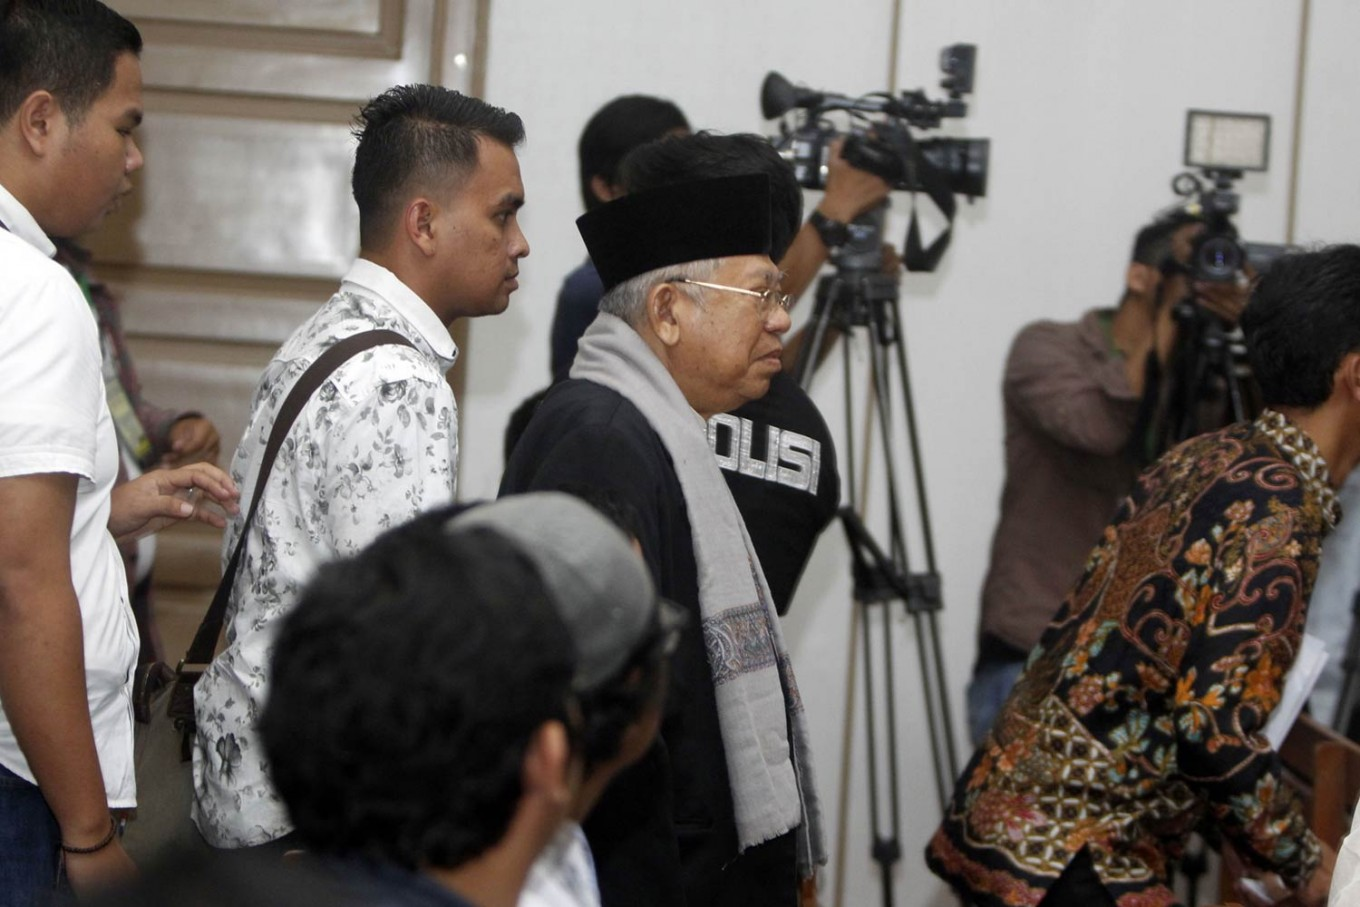 Ma'ruf Amin says he regrets testifying against Ahok